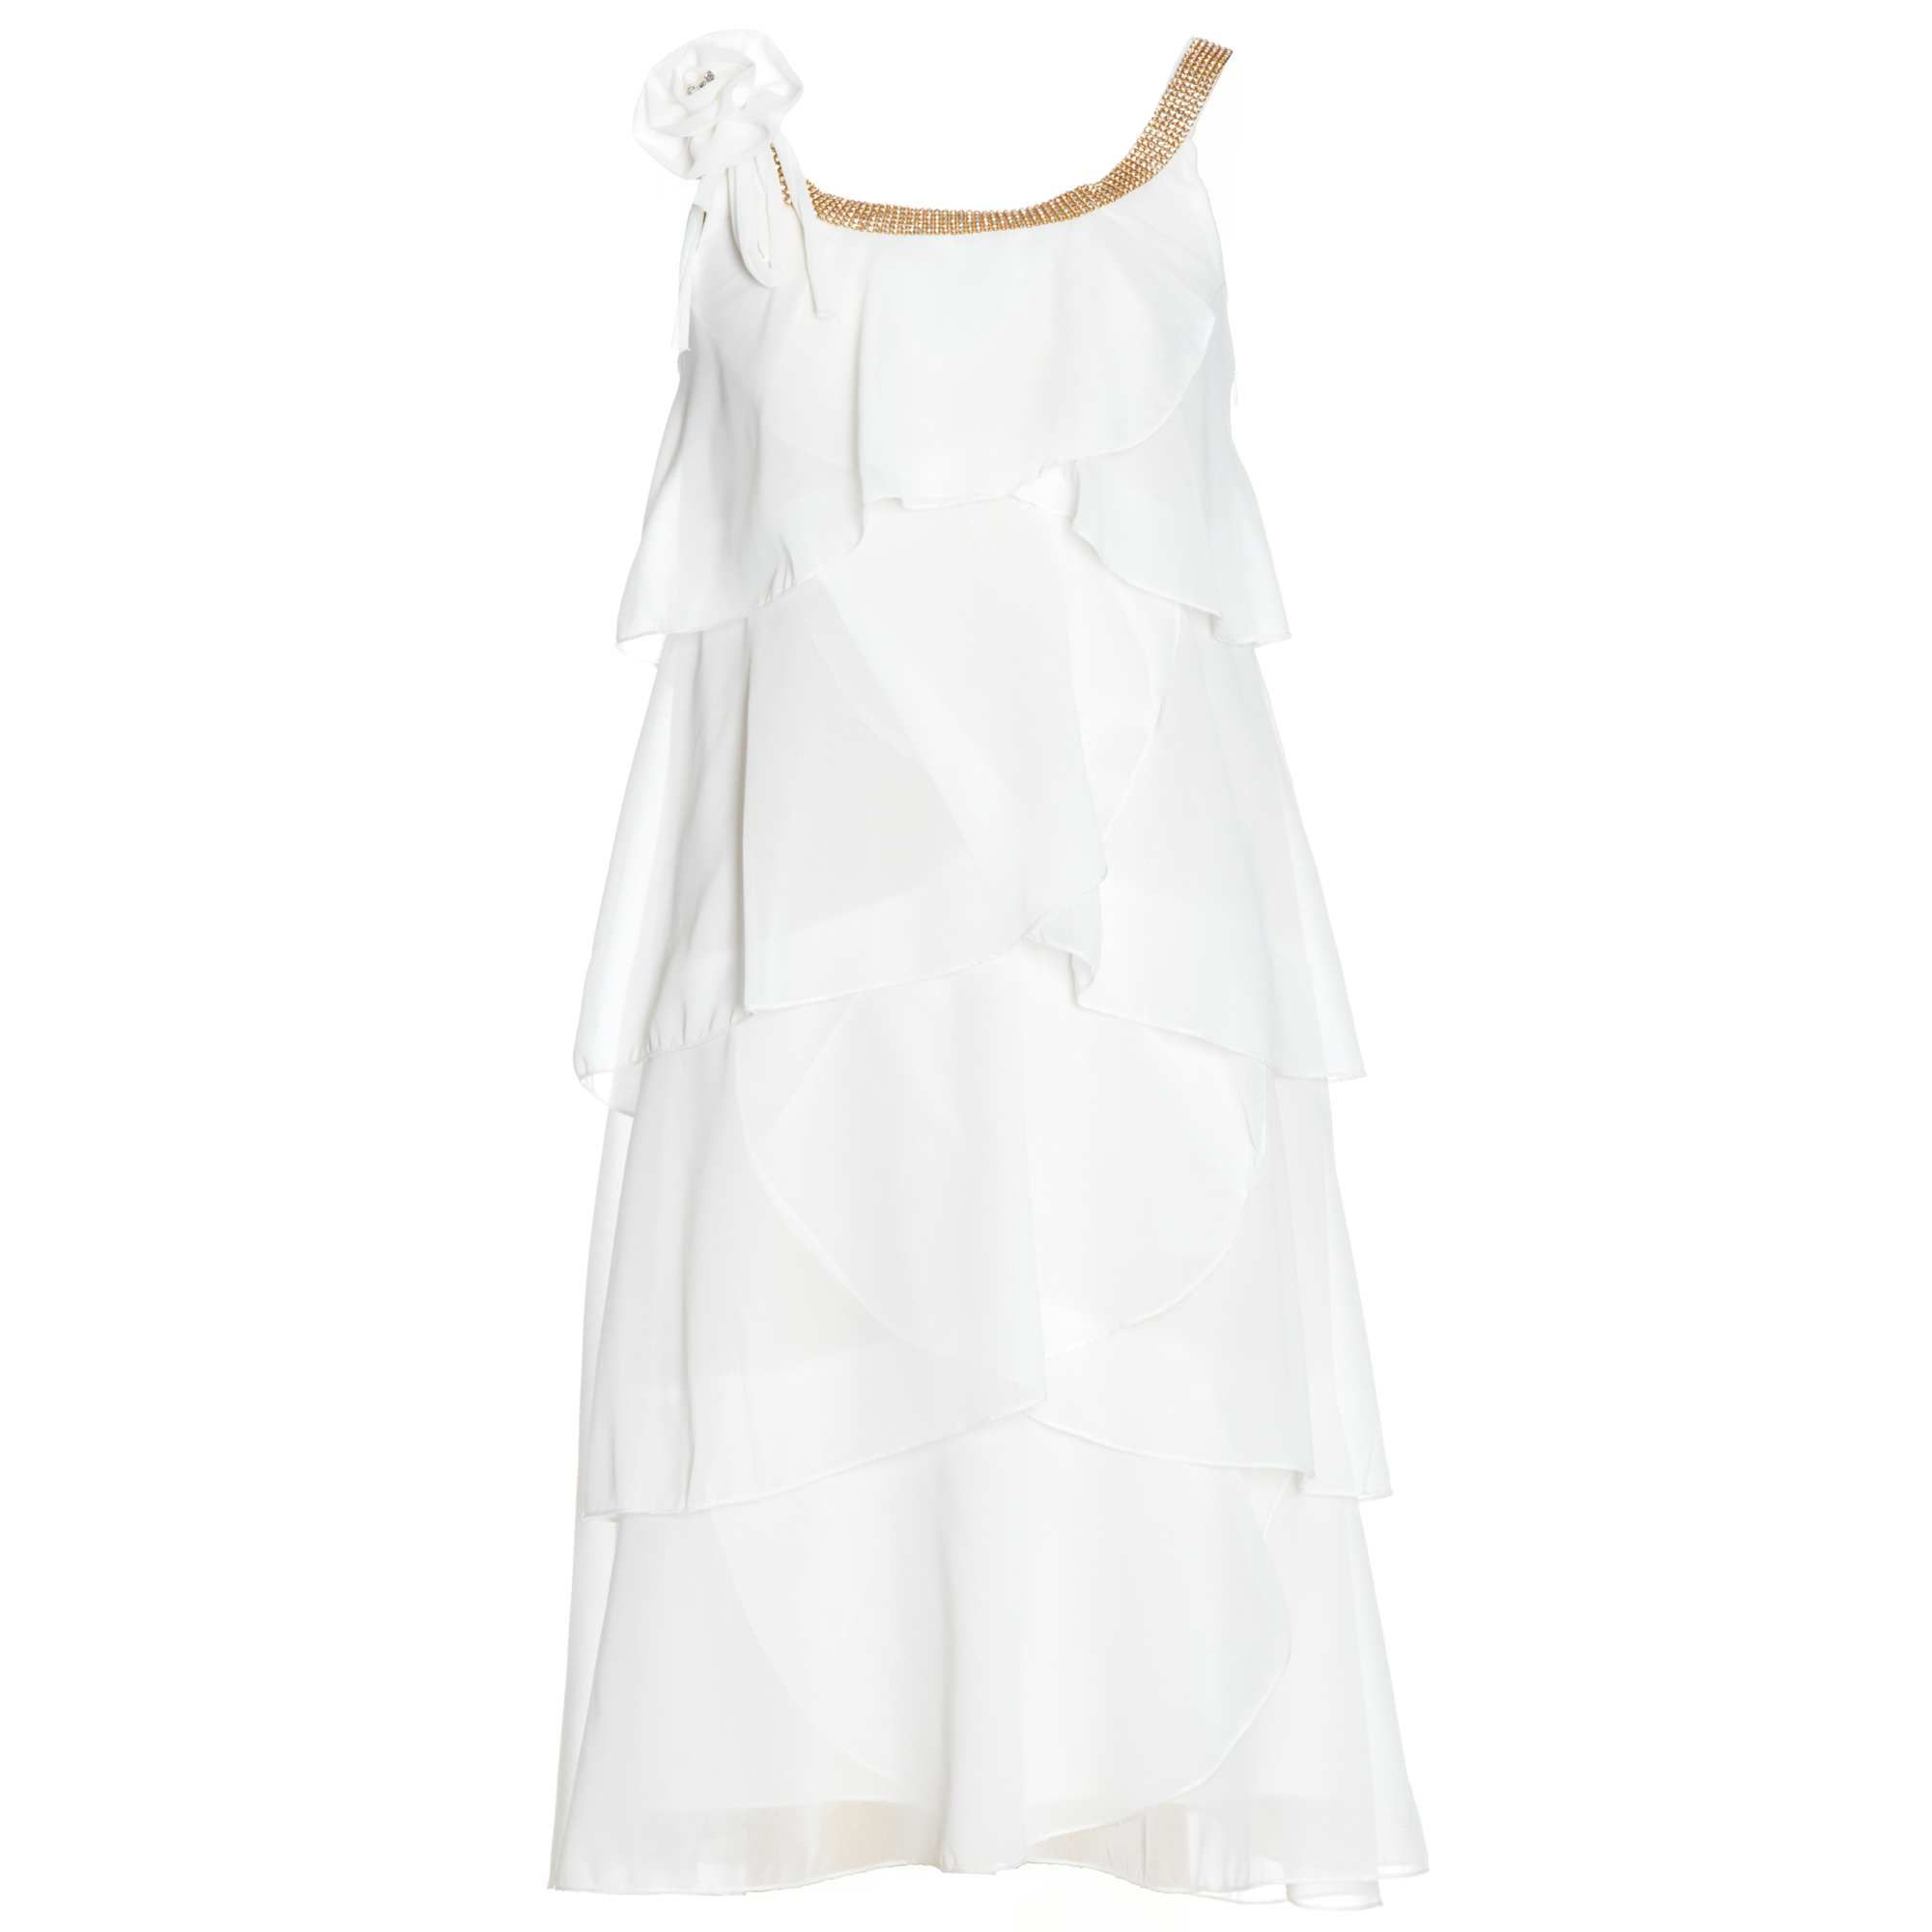 Robe A Volants Details Strass Fille Adolescente 25 00 Robe Soiree Fille Soiree Filles Robe A Volant